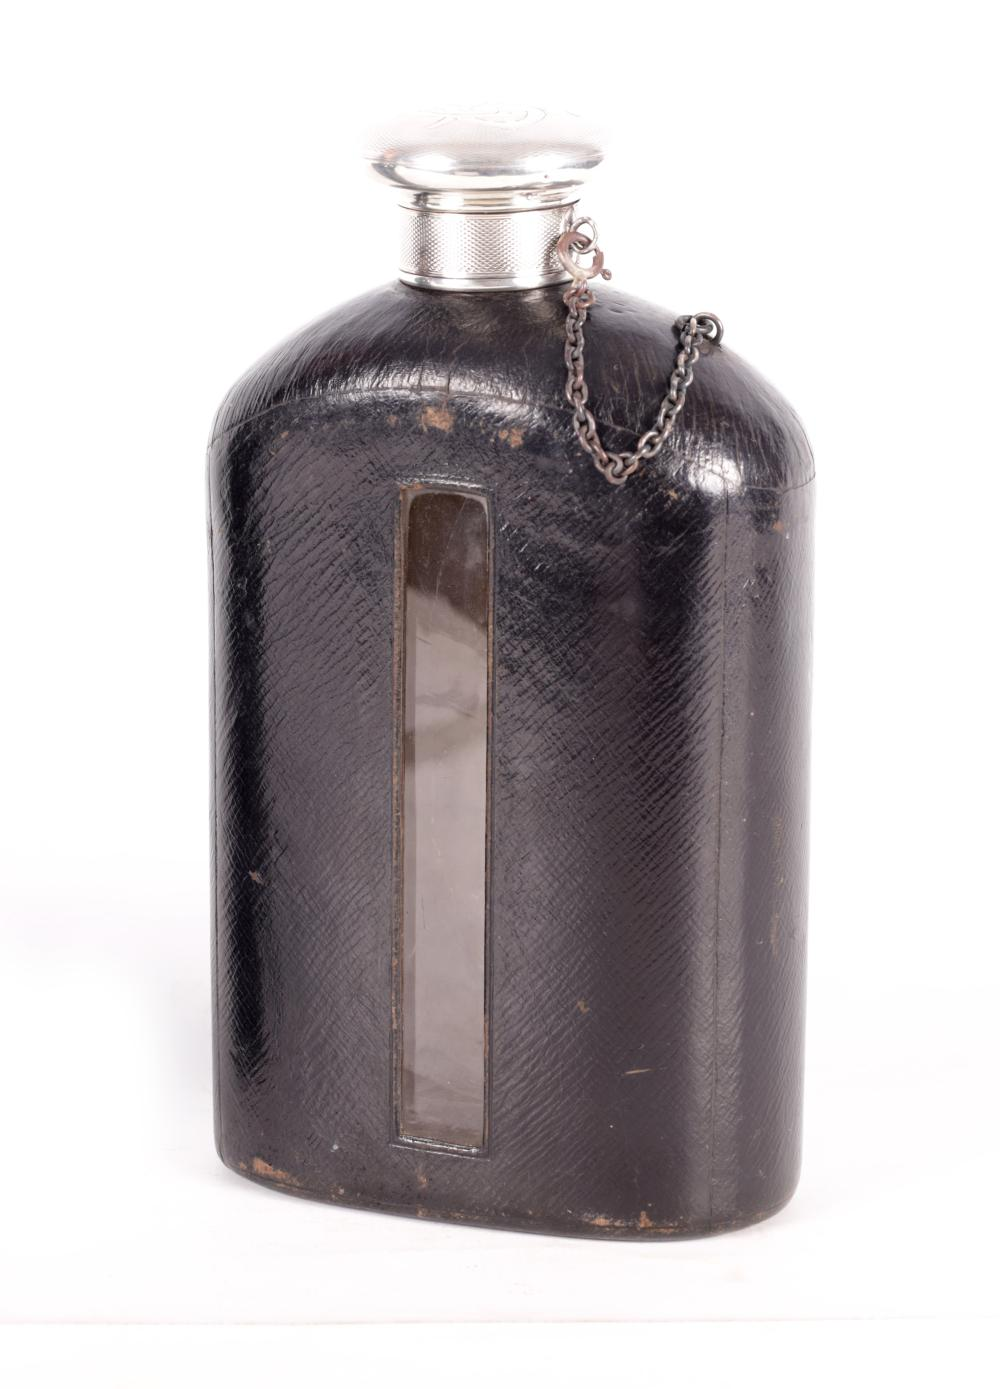 A LATE 19TH CENTURY OVERSIZED SILVER AND LEATHER BOUND HIP FLASK